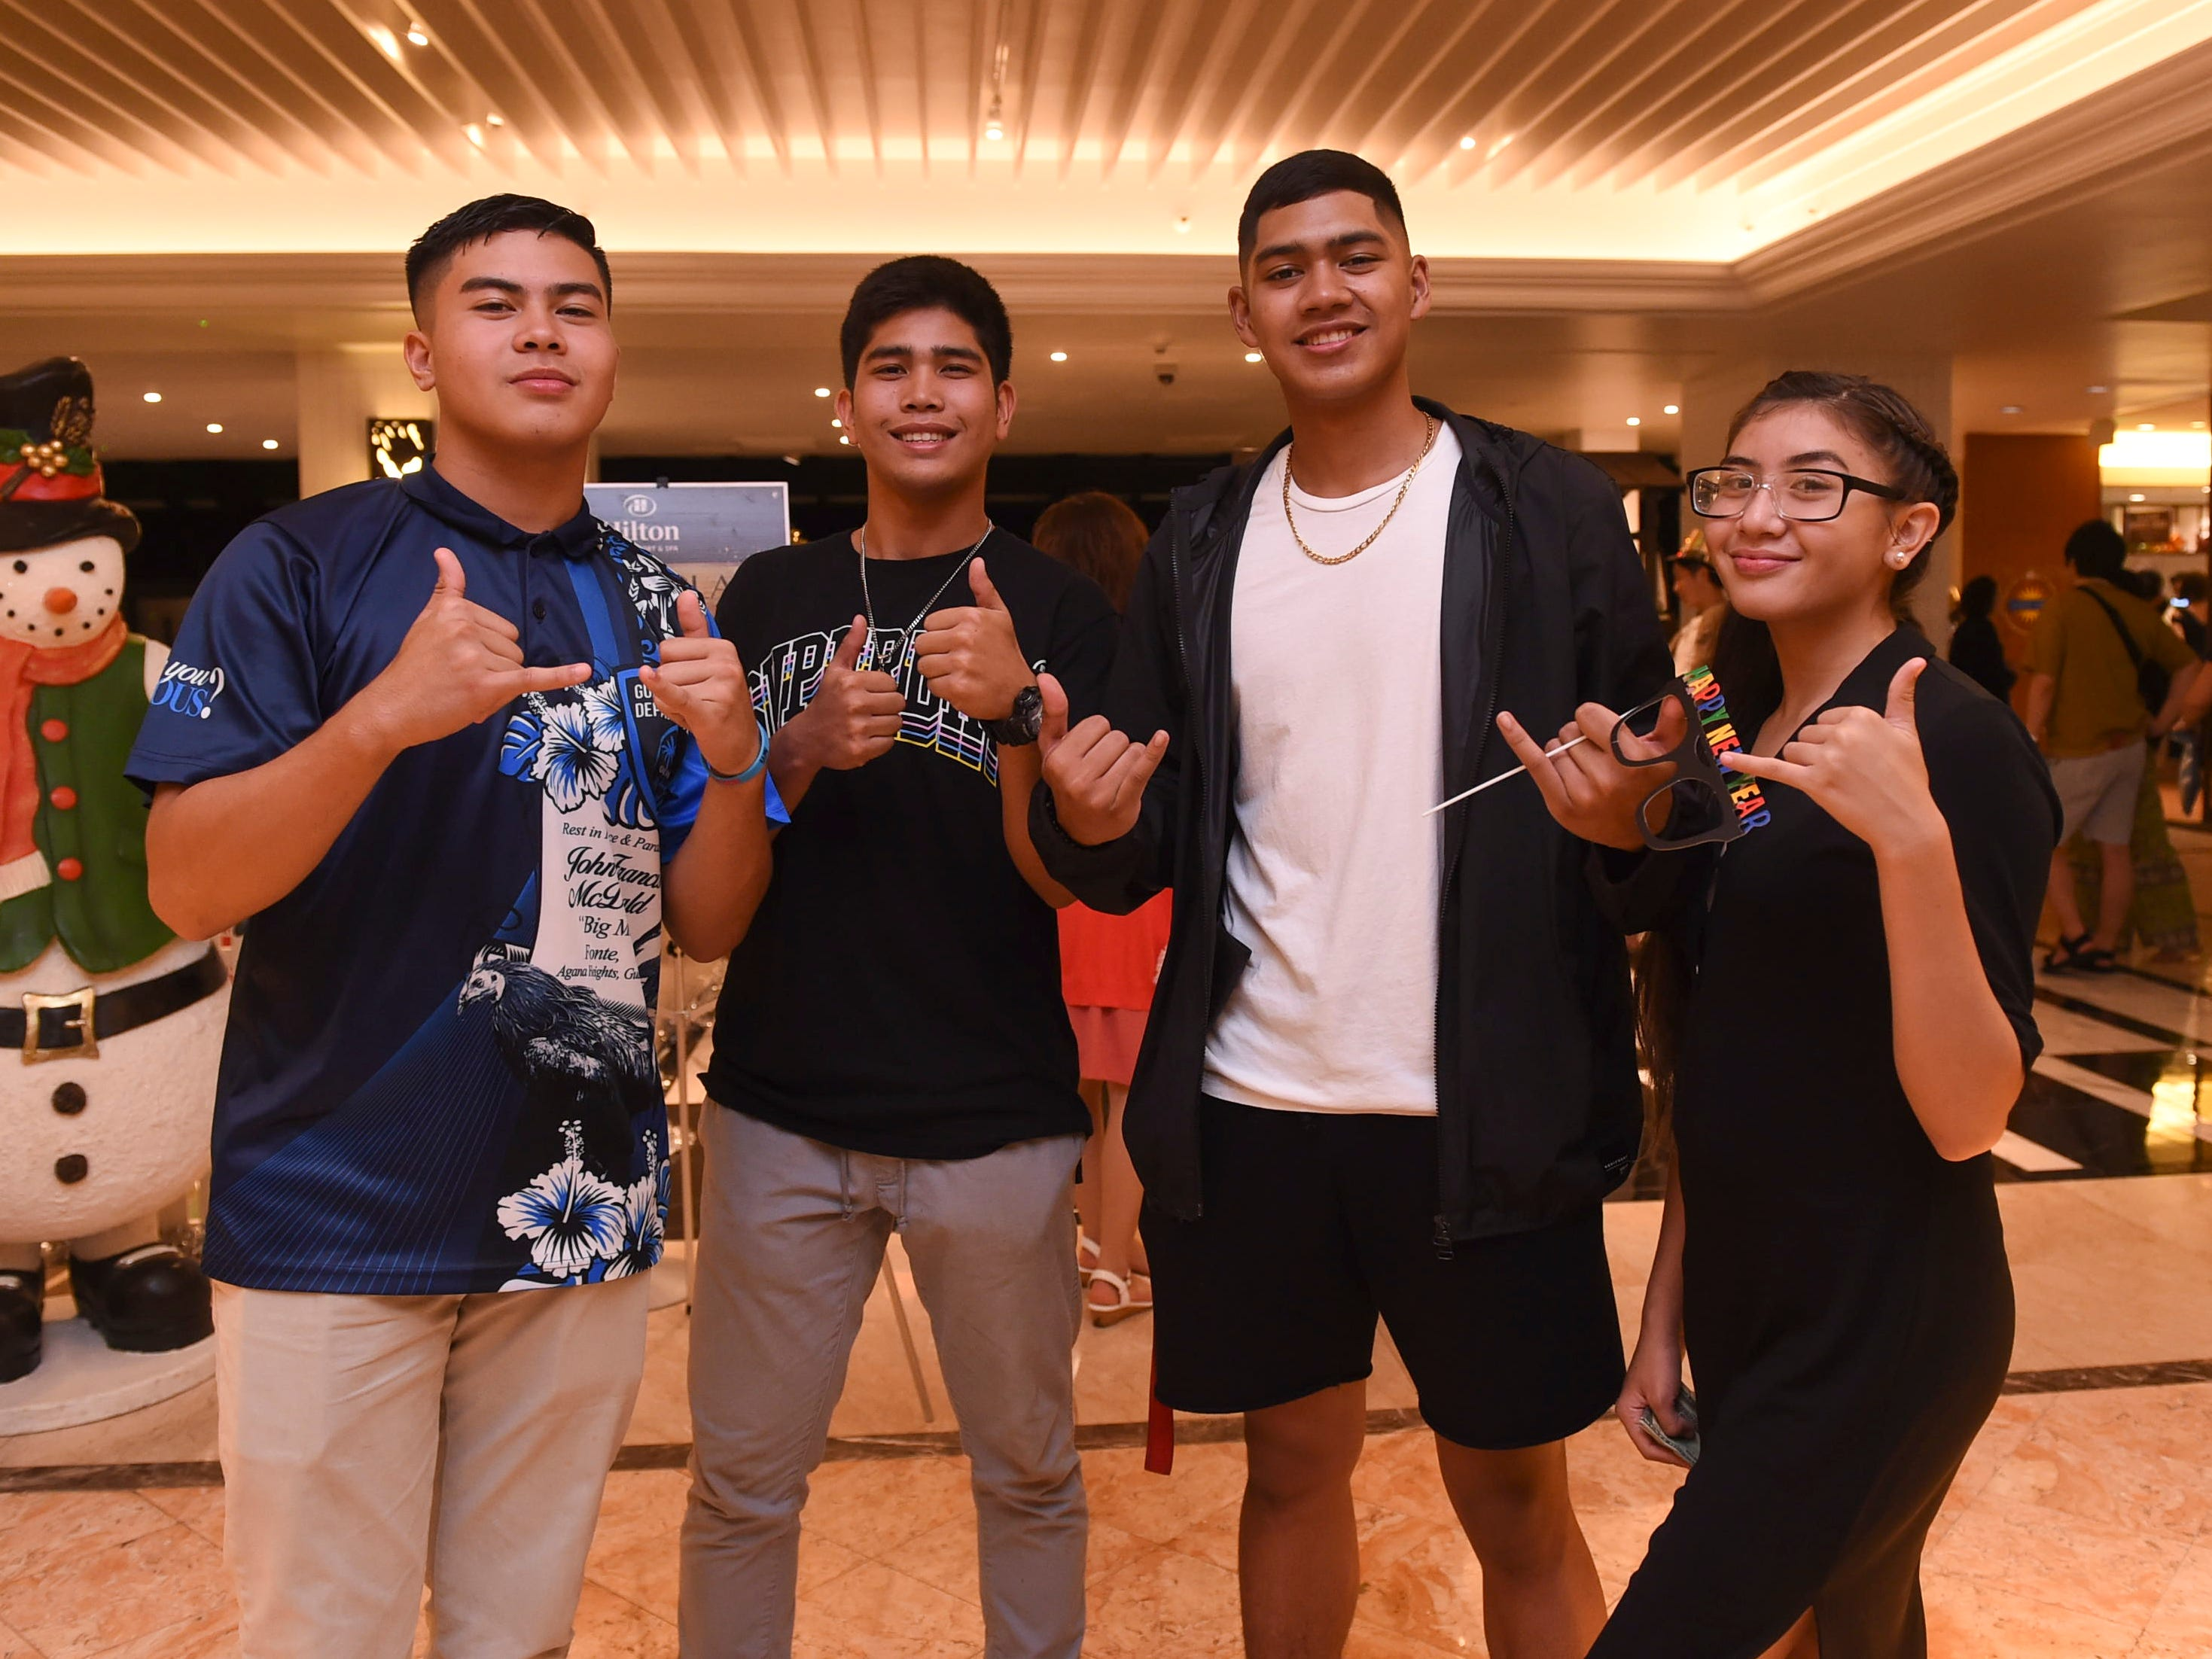 Families celebrate the new year at the Hilton Guam Resort and Spa, Jan. 1, 2019.